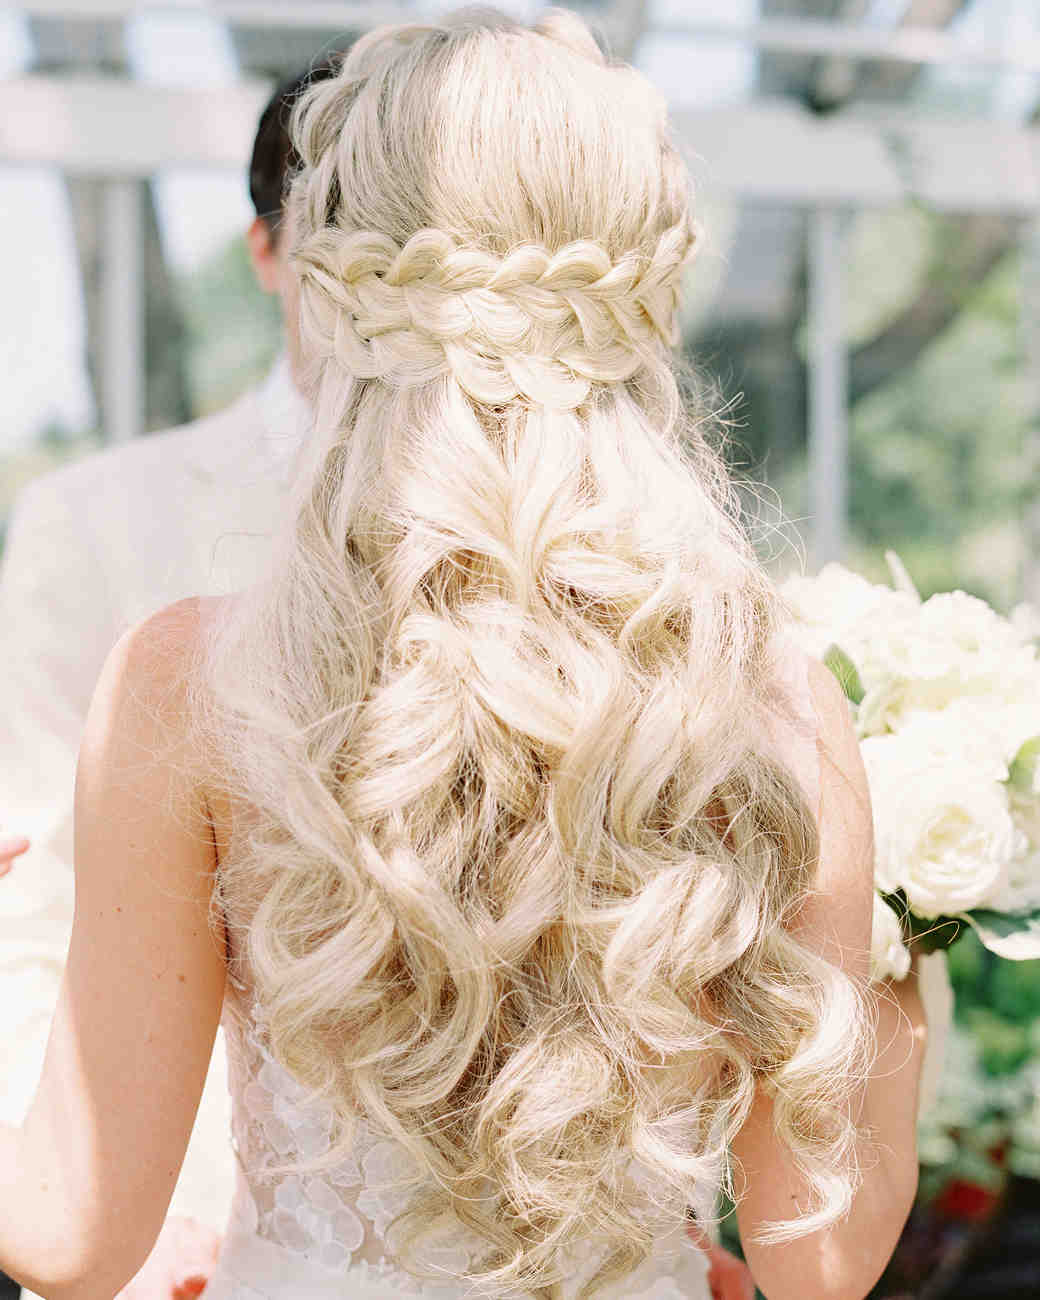 Wedding Hairstyles Braid: 28 Half-Up, Half-Down Wedding Hairstyles We Love